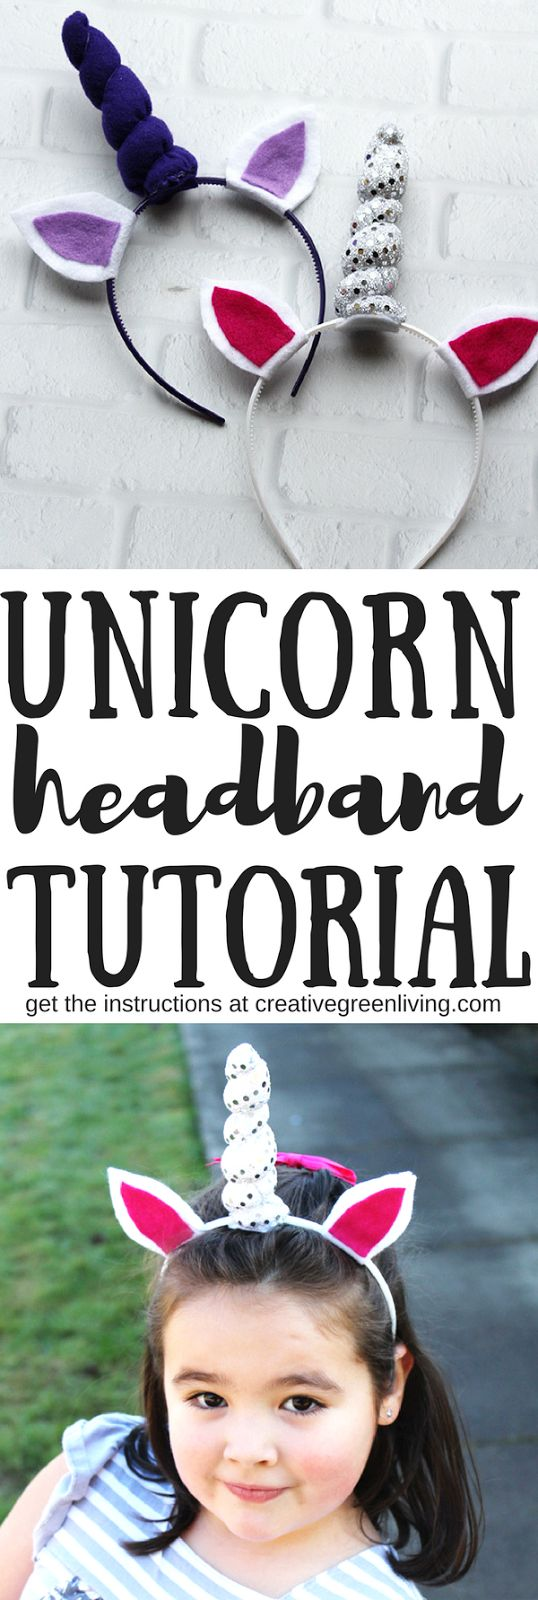 How to make a DIY unicorn headband tutorial. Includes a free printable pattern template. Perfect for unicorn birthday parties. Same pattern works for babies, toddlers, kids and adults.